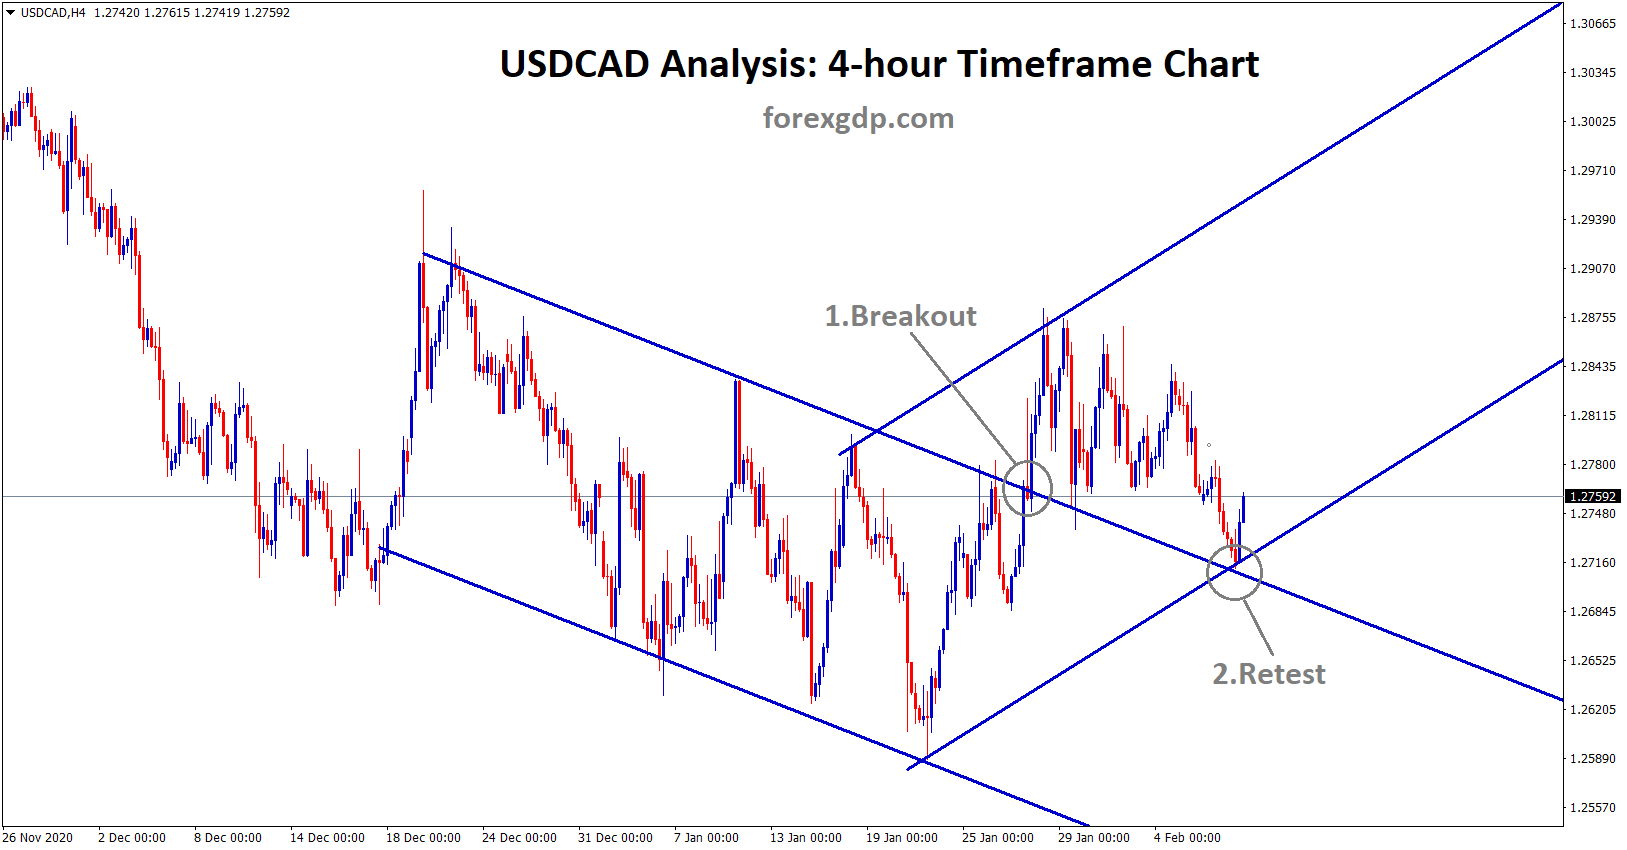 usdcad breakout and retest of the trend line